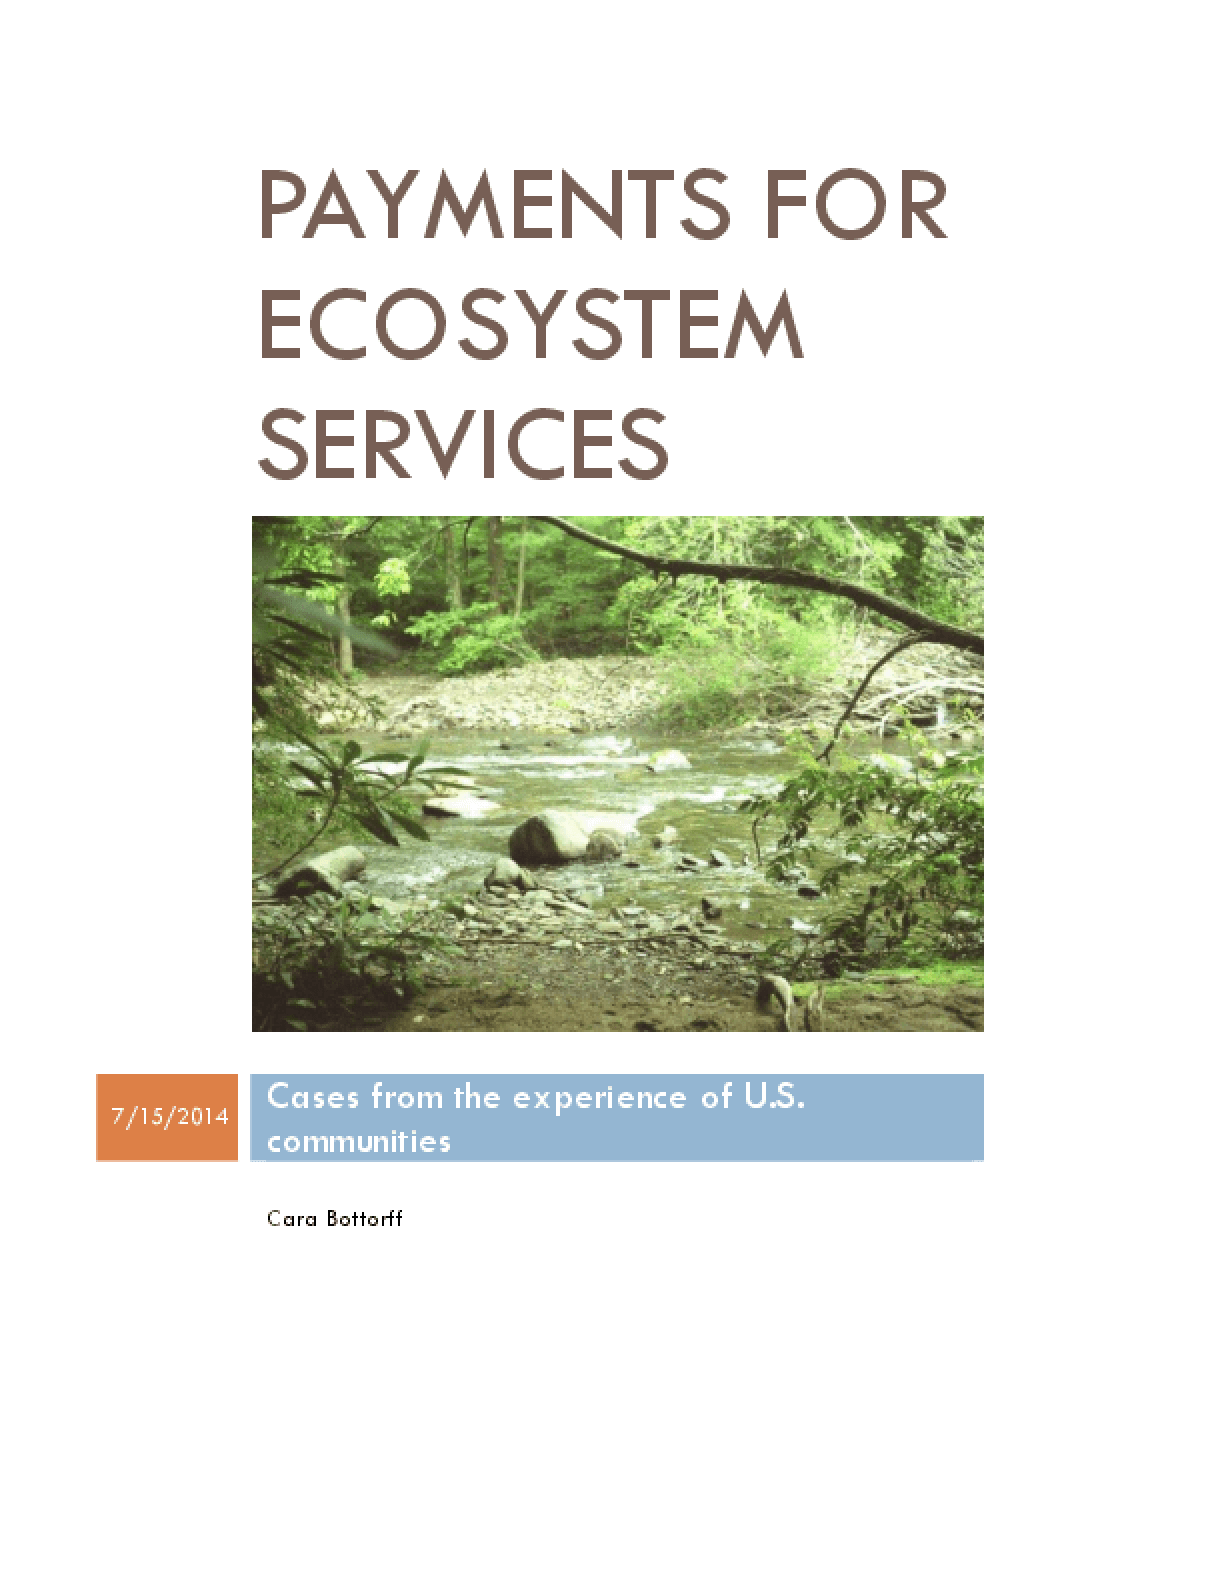 Payment for Ecosystem Services: Cases from the Experience of U.S. Communities